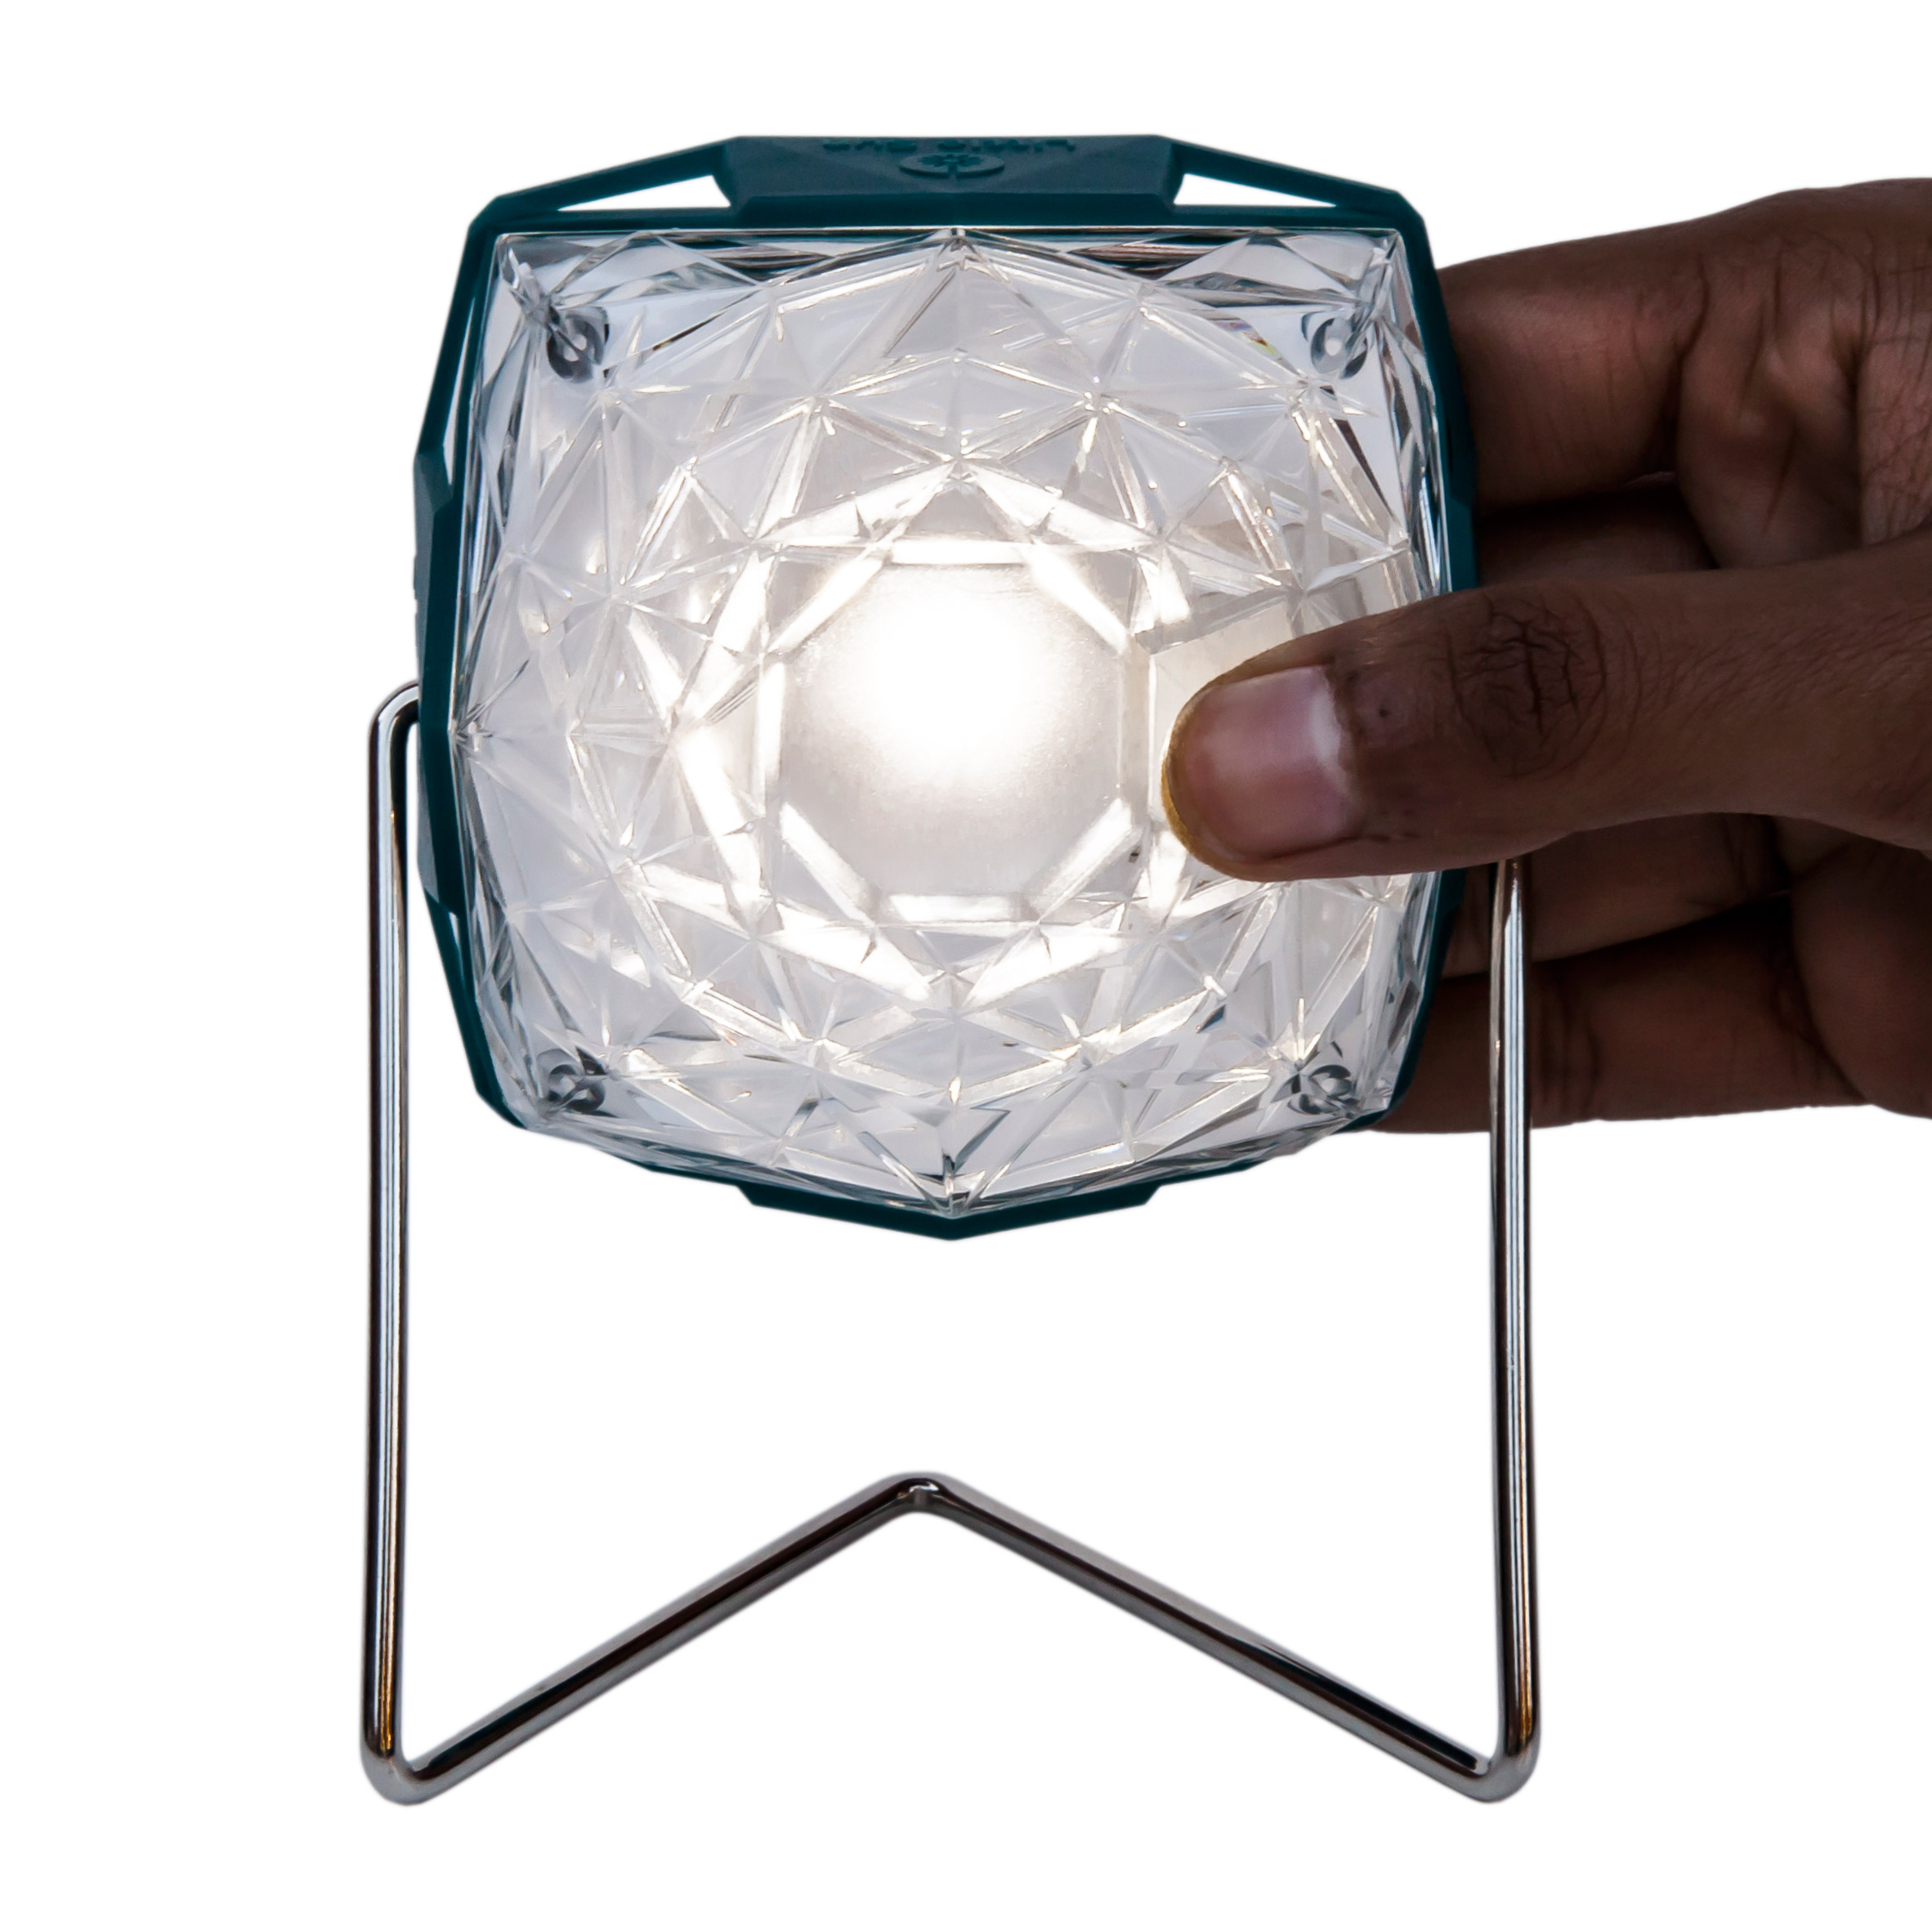 Olafur Eliasson reveals his latest pocket-sized solar lamp, the Little Sun Diamond